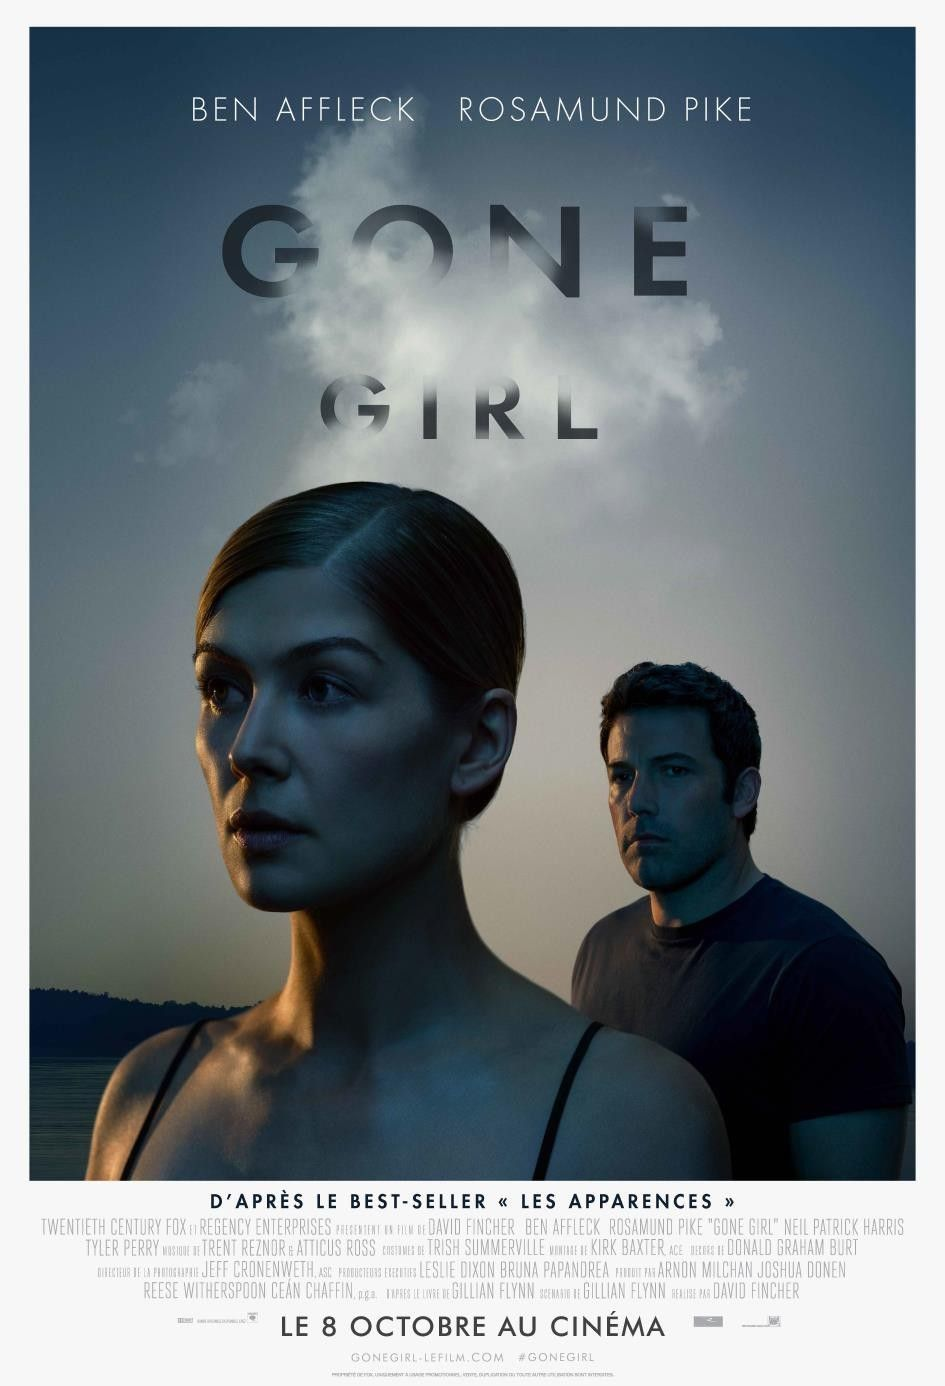 GONE GIRL - la critique